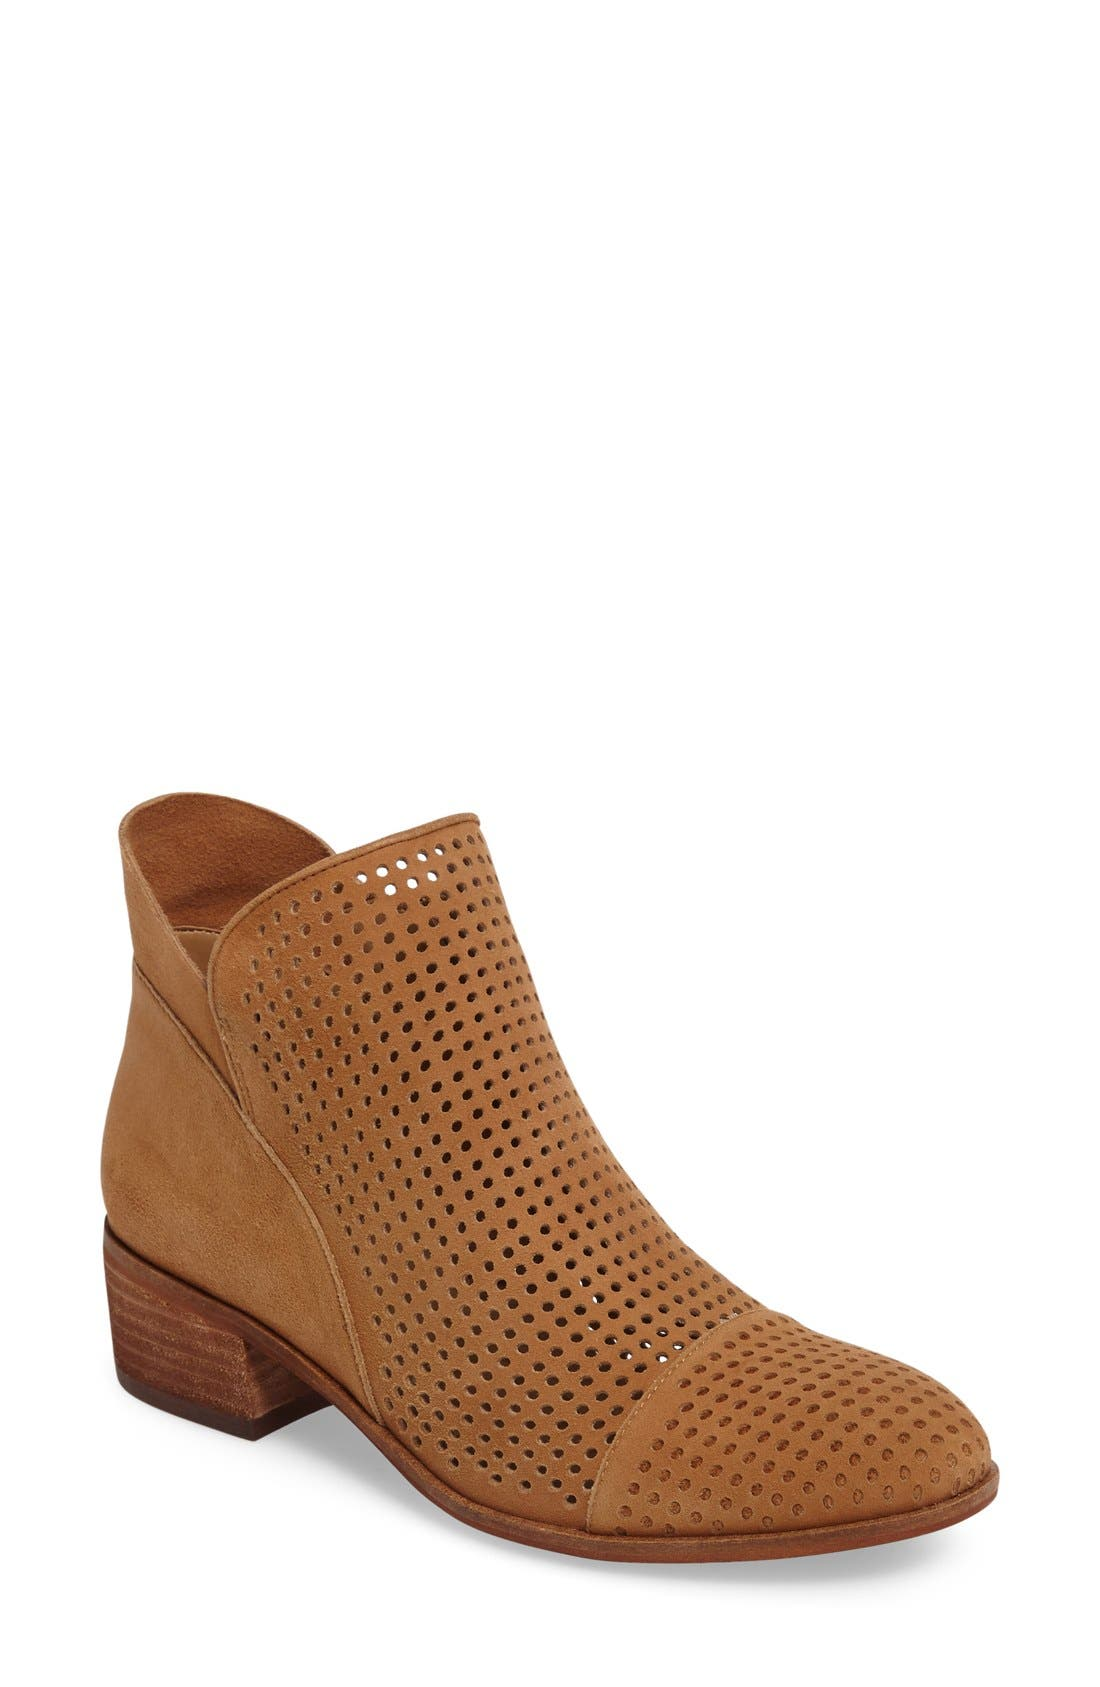 Alternate Image 1 Selected - Sam Edelman Pamina Perforated Bootie (Women)